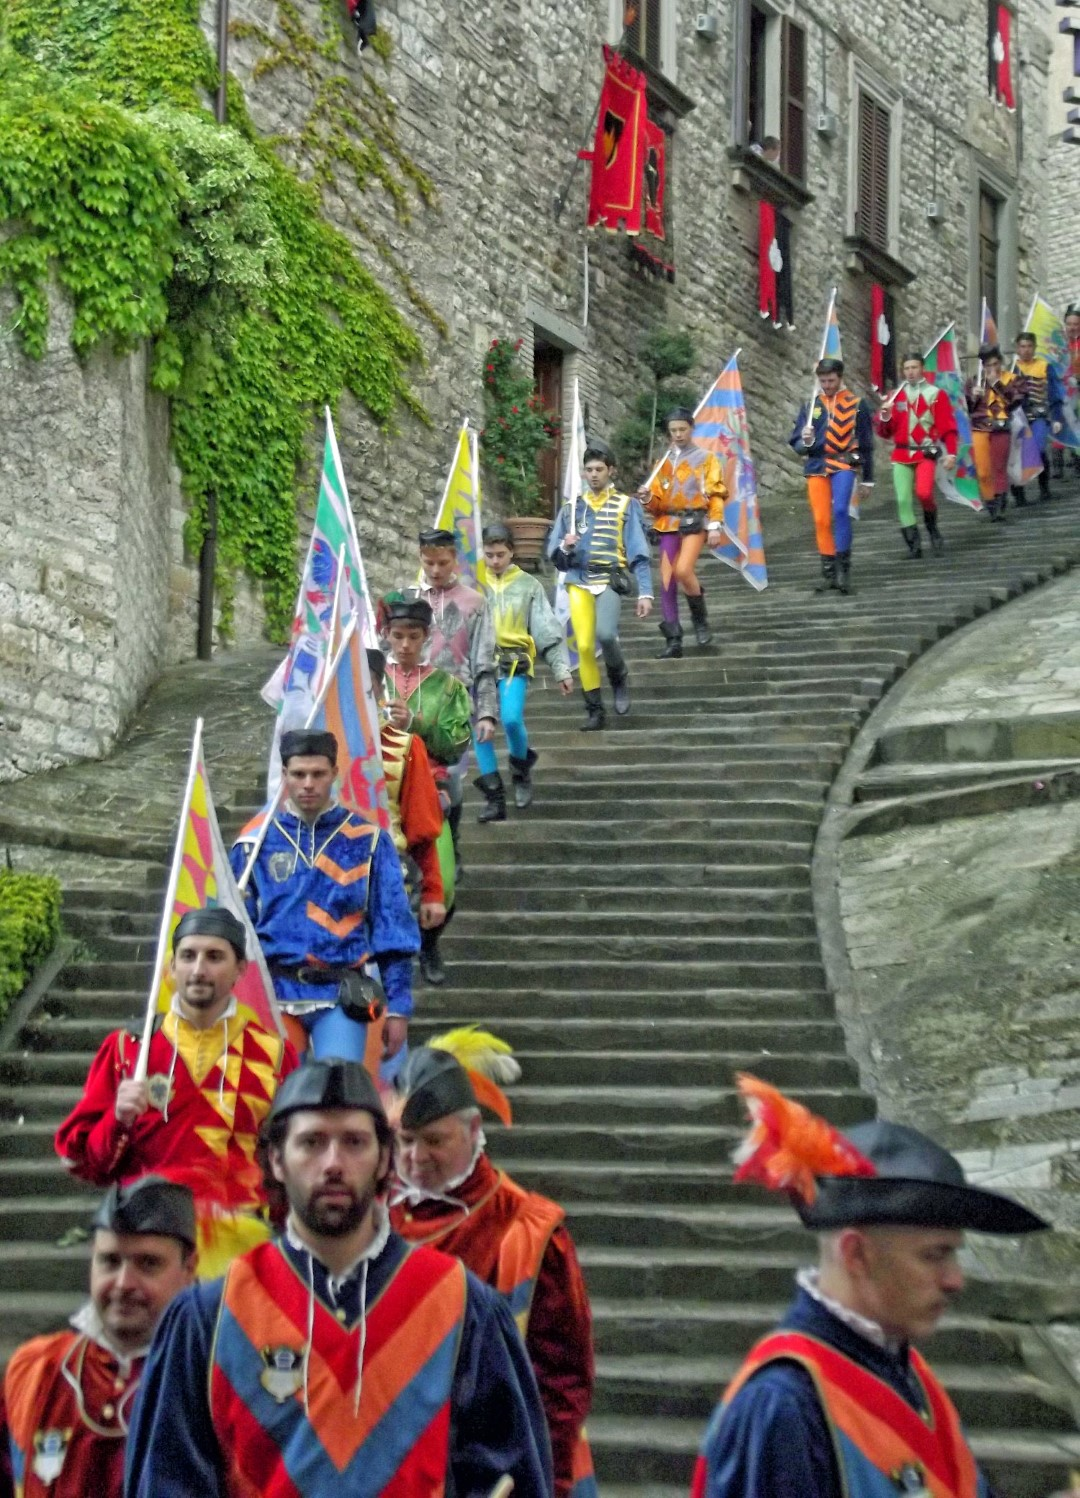 Men in colourful clothing on steps with flags